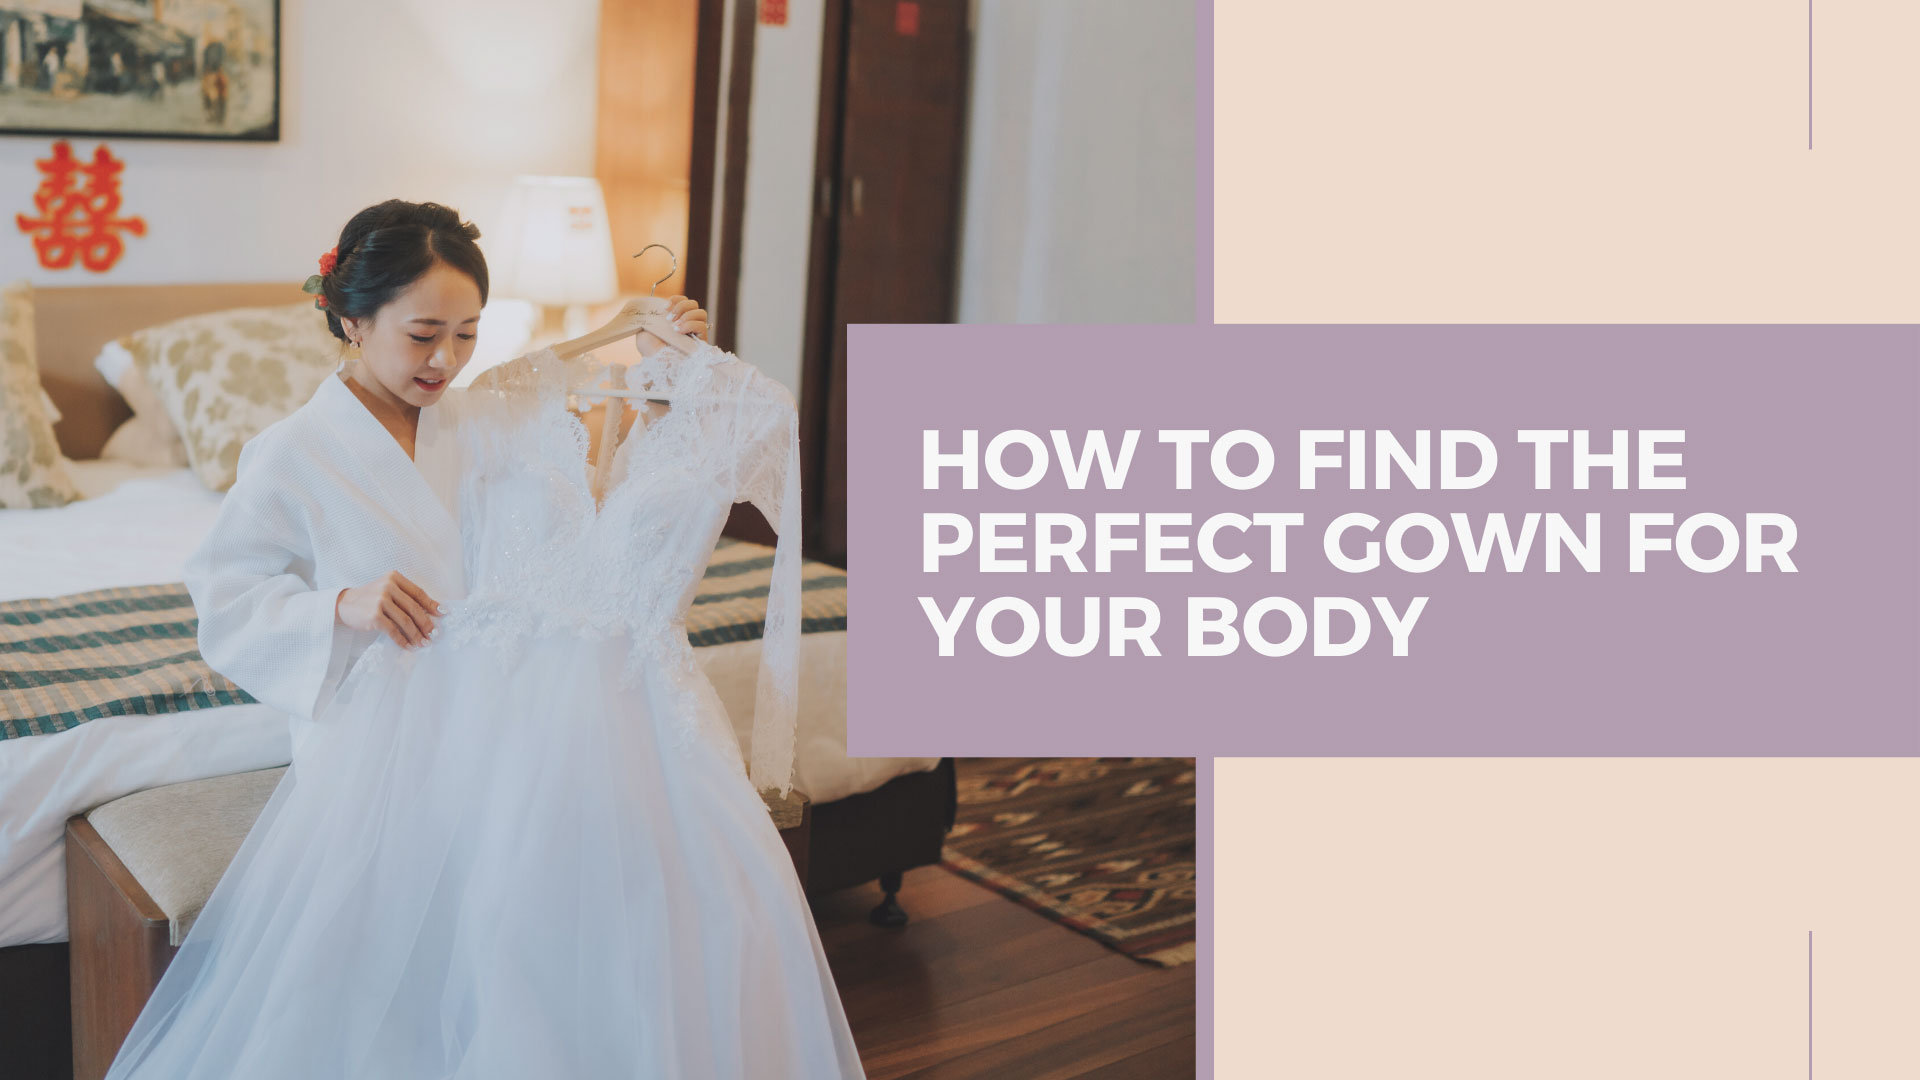 How to find the perfect gown for your body